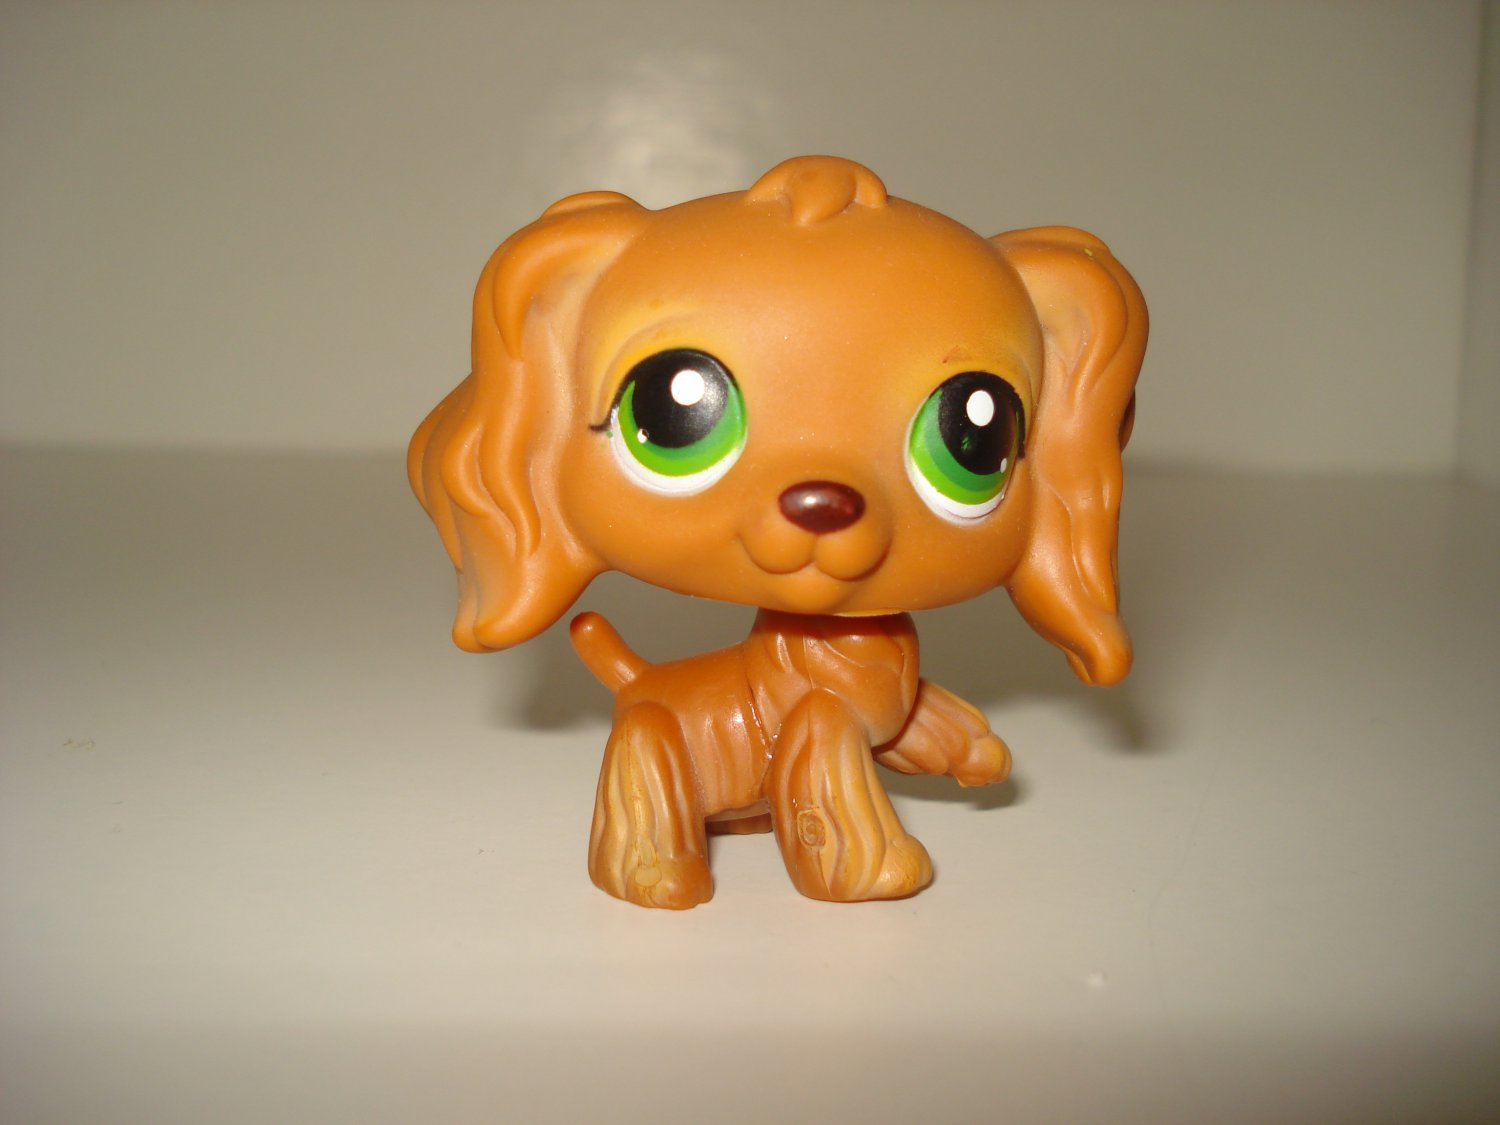 Littlest Pet Shop is a Canadian–American animated television series developed by Tim Cahill and Julie grunarader.cf series is based on Hasbro's Littlest Pet Shop toy line, and features Blythe Baxter (voiced by Ashleigh Ball, with the character based off the doll of the same name) as the main protagonist, as well as other characters who reside in Downtown City, a city modeled after.